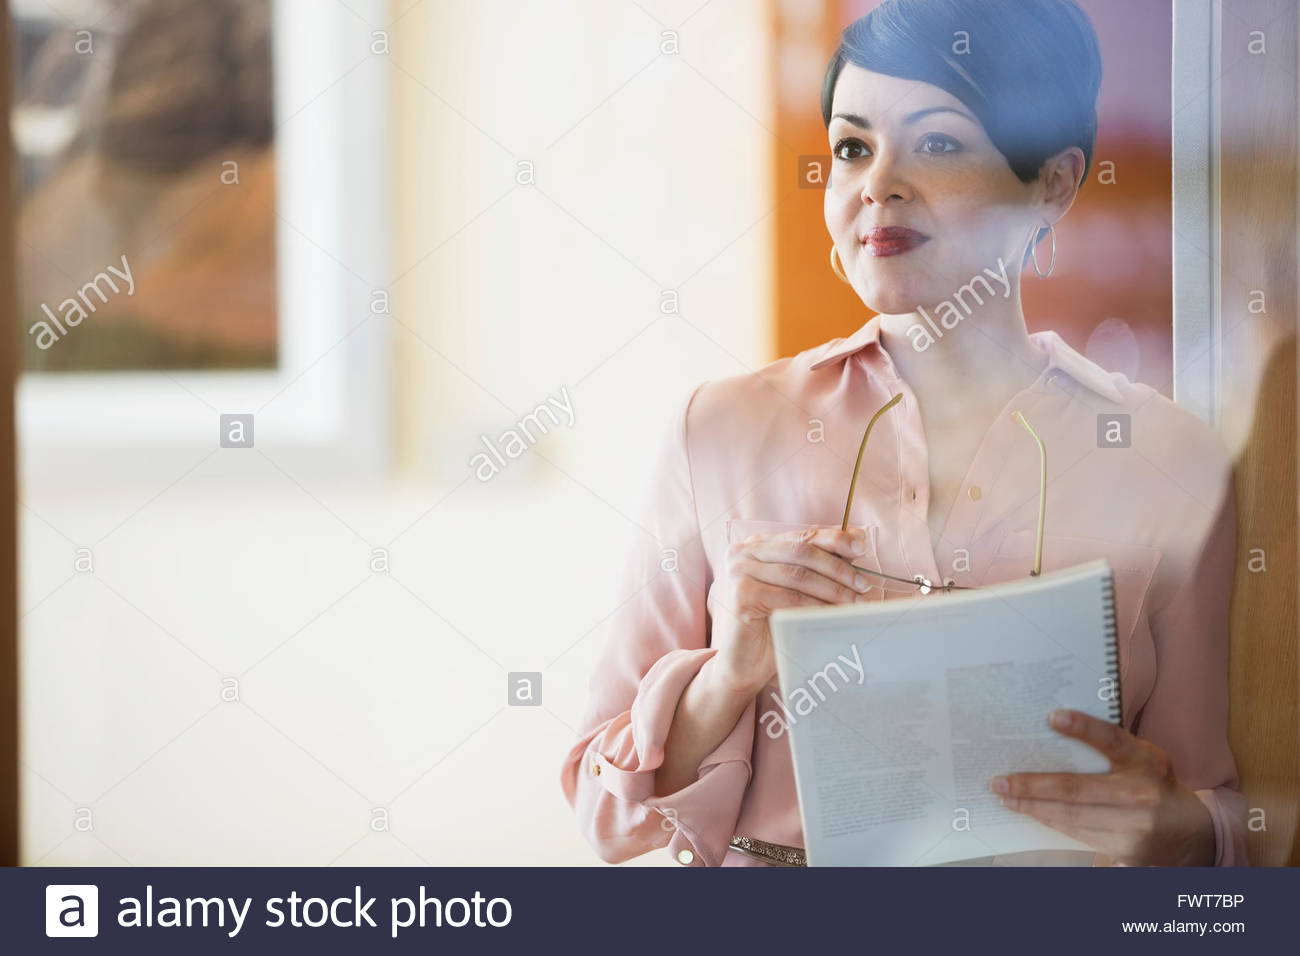 Businesswoman looking away while holding book and eyeglasses - Stock Image